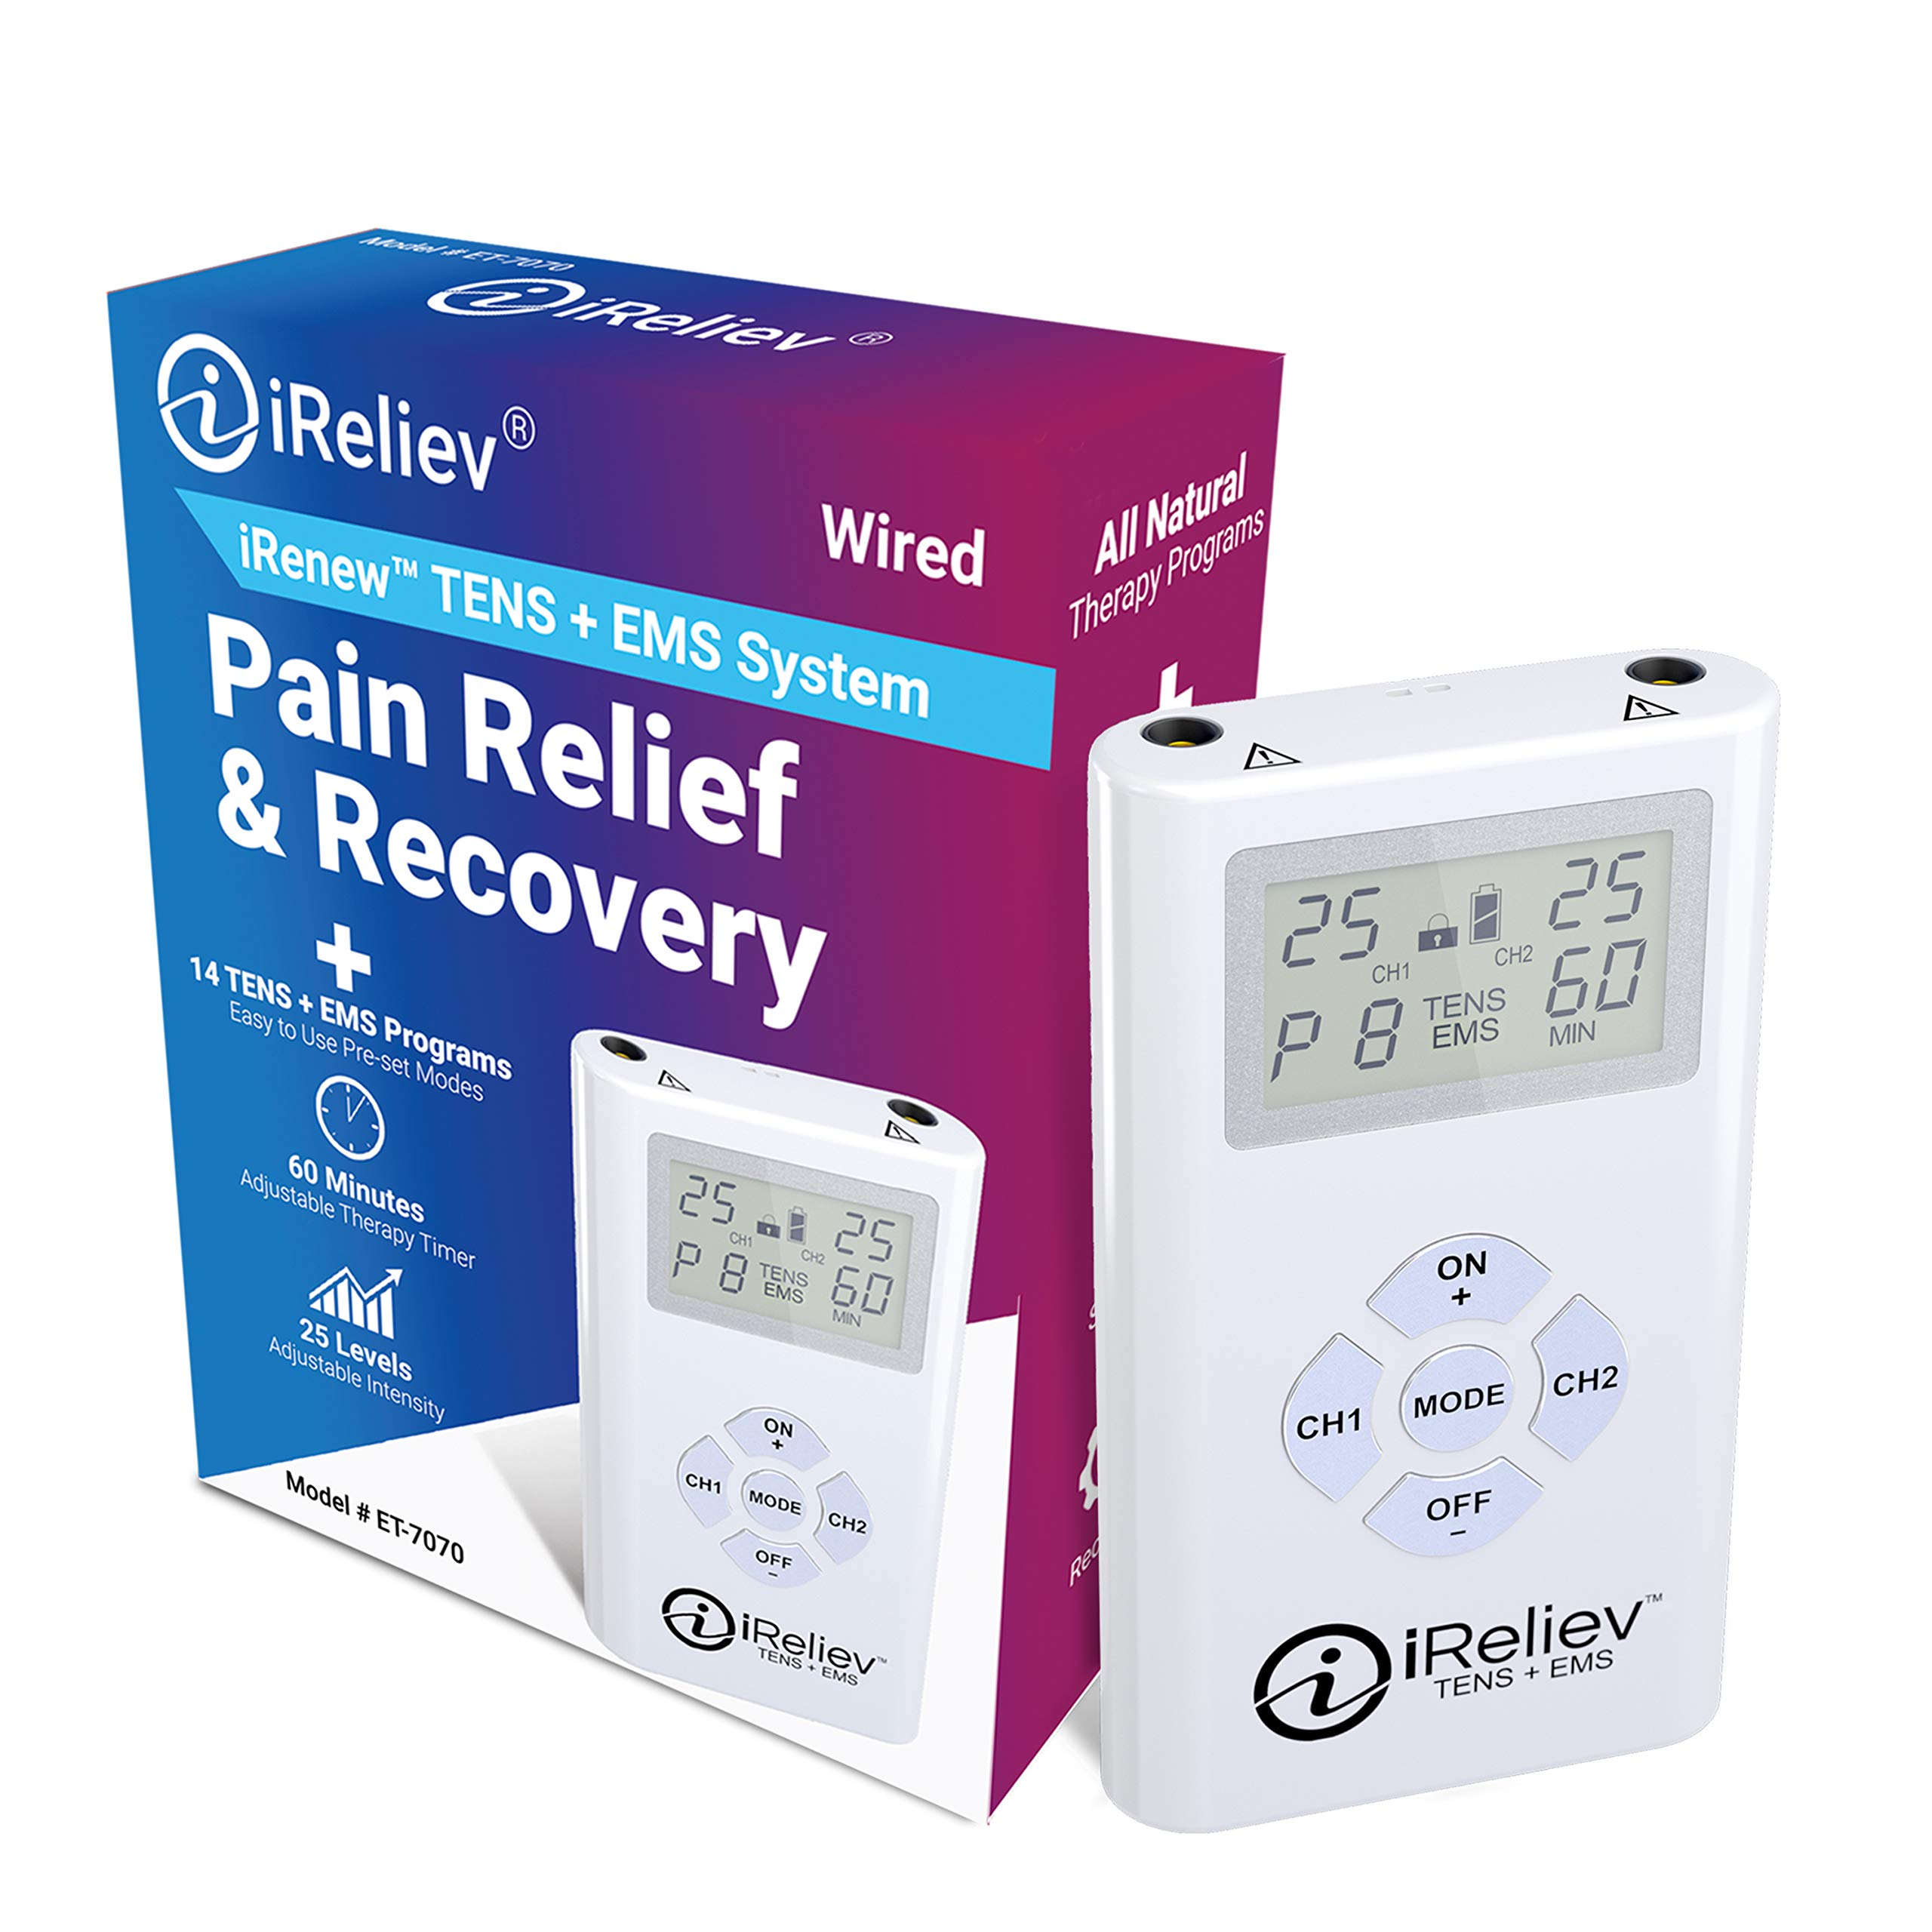 iReliev TENS + EMS Combination Unit Muscle Stimulator for Pain Relief & Arthritis & Muscle Strength - Treats Tired and Sore Muscles in Your Shoulders, Back, Ab's, Legs, Knee's and More by iReliev